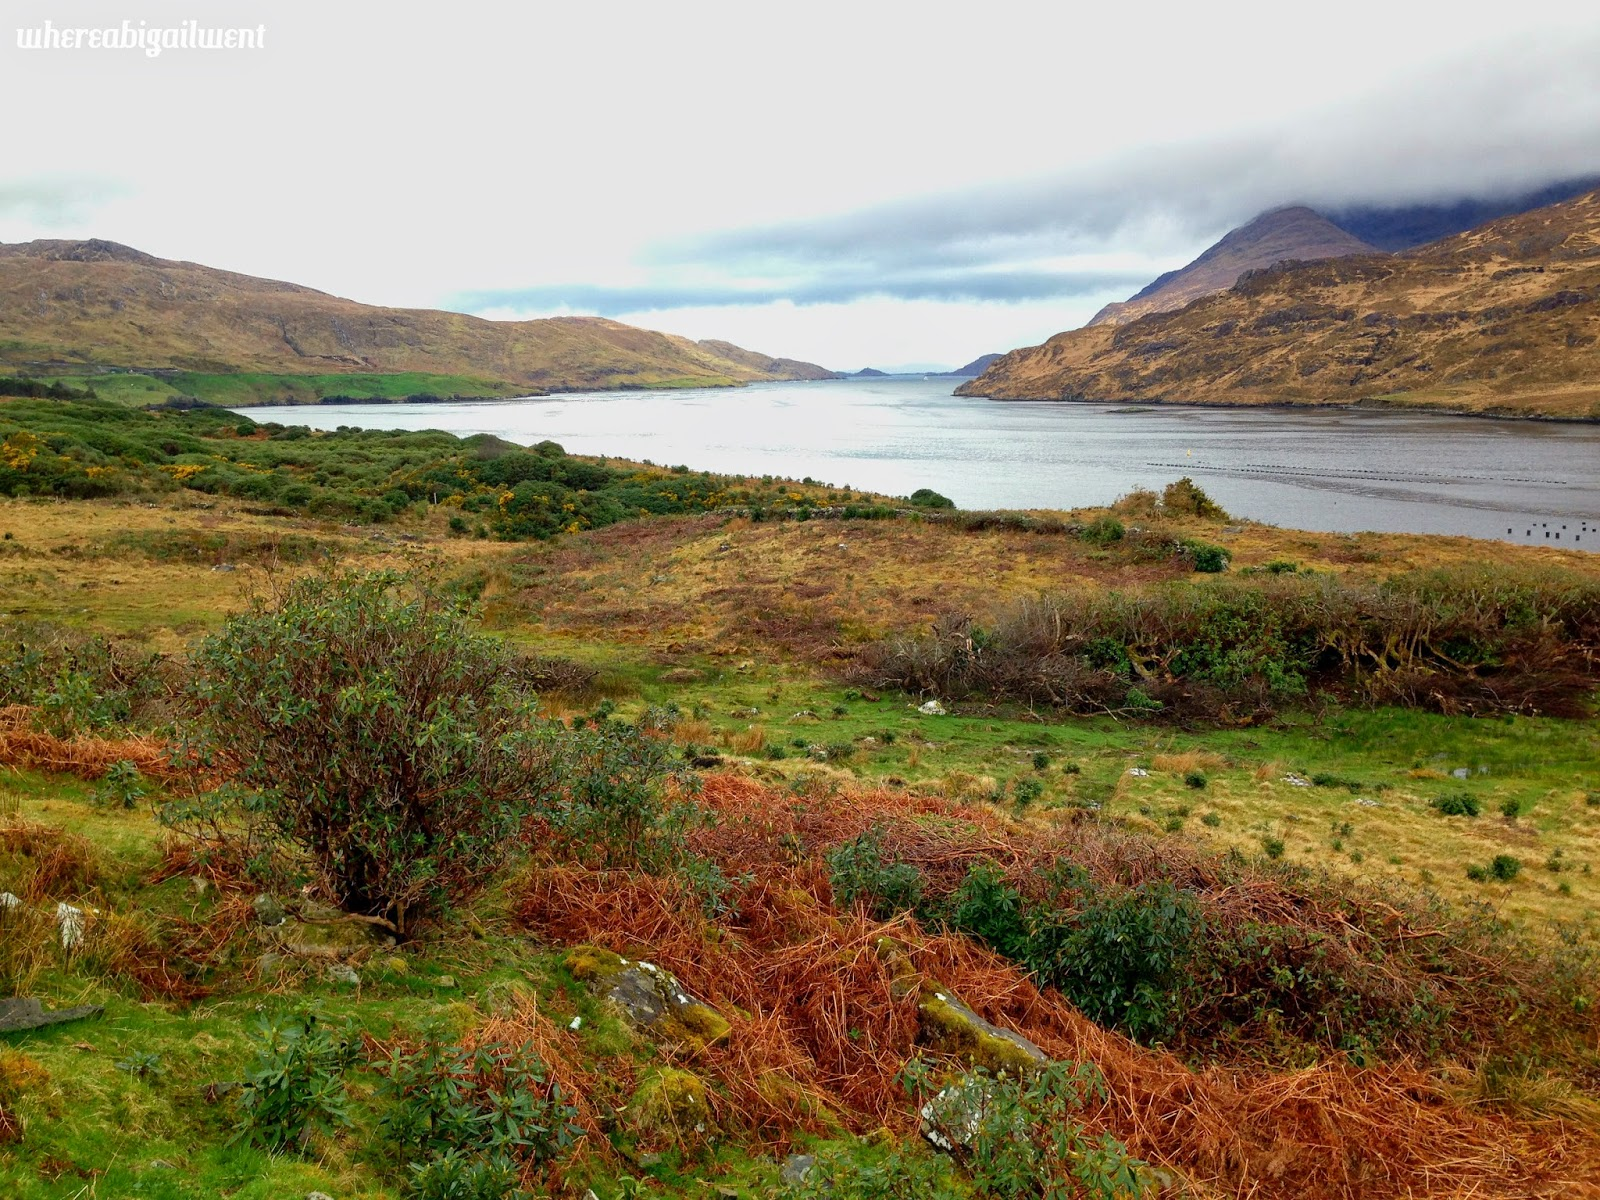 Only Fjord in Ireland